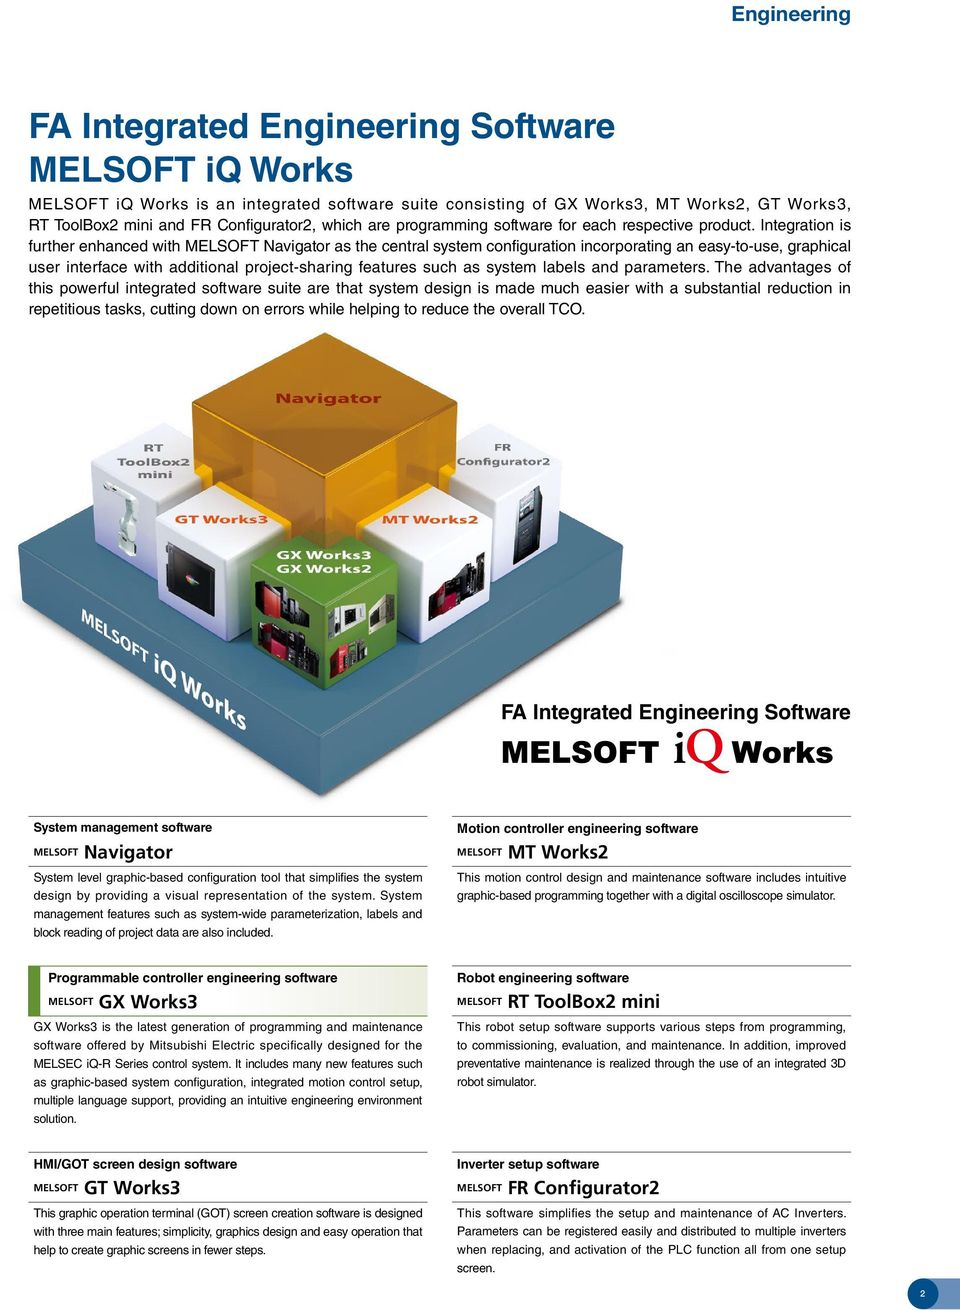 Programmable controller engineering software MELSOFT GX